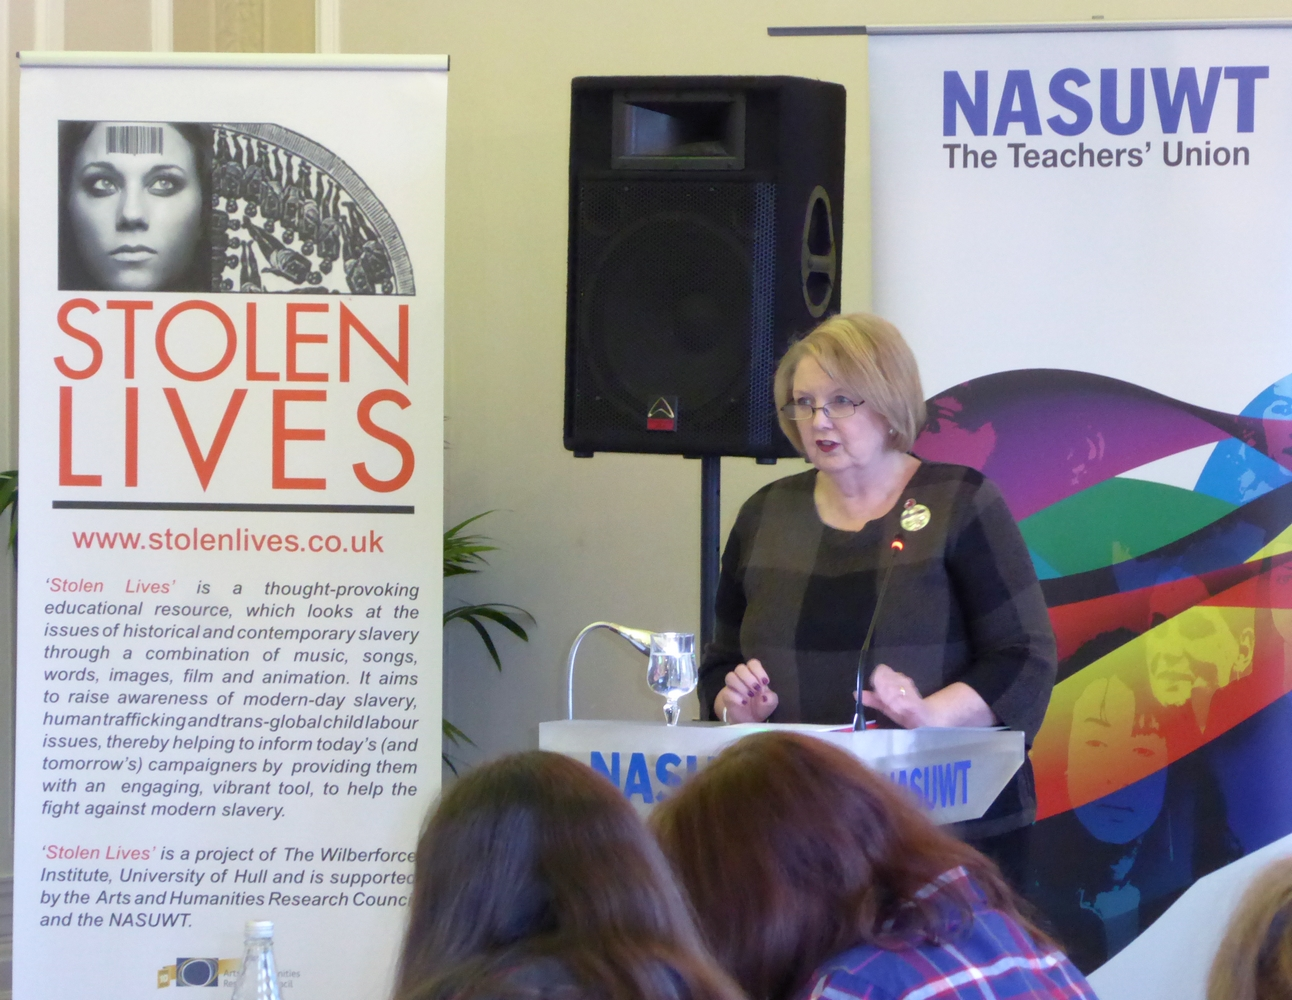 Ms Chris Keates, General Secretary of NASUWT, speaking at the Yorkshire and Humber Regional meeting.